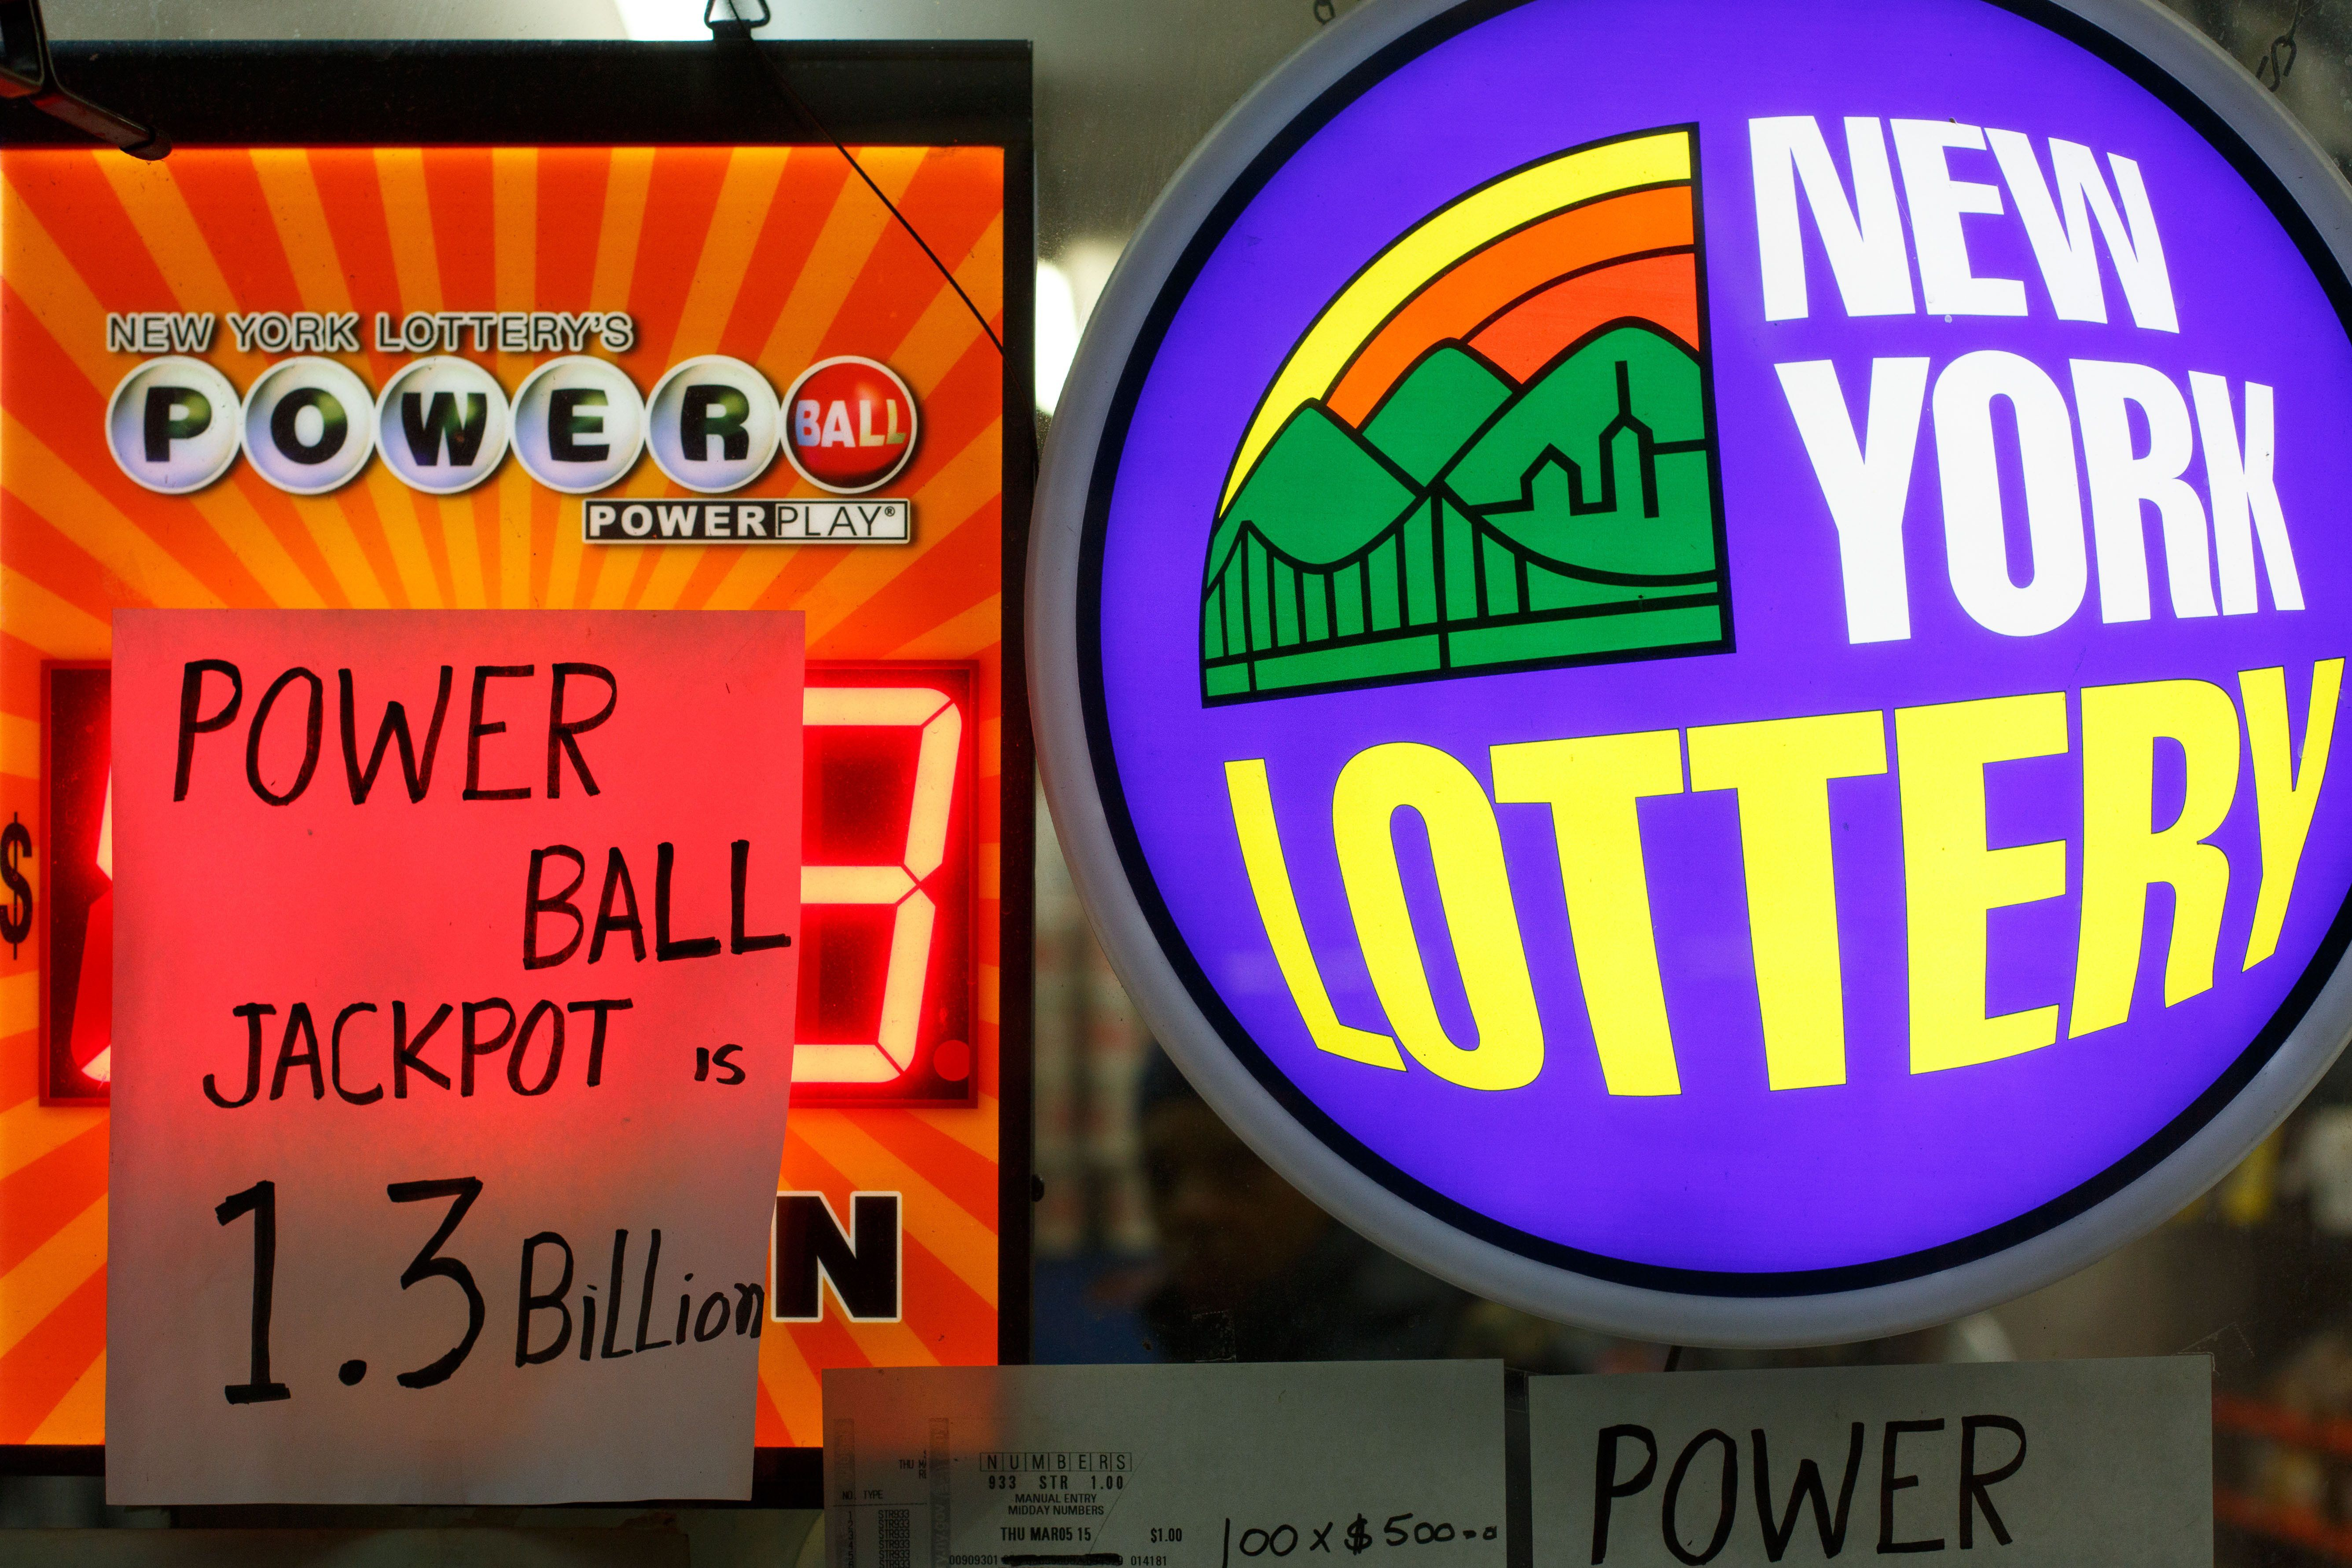 NEW YORK, Jan. 11, 2016 -- An advertisement for the Powerball jackpot is seen in Mid-town Manhattan, New York, United States, Jan. 11, 2016. The Powerball lottery jackpot continues to grow, to an estimated record 1.3 billion U.S. dollars by the next drawing at 10 p.m. ET Wednesday Jan. 13, after nobody matched the winning numbers last Saturday. (Xinhua/Li Muzi via Getty Images)